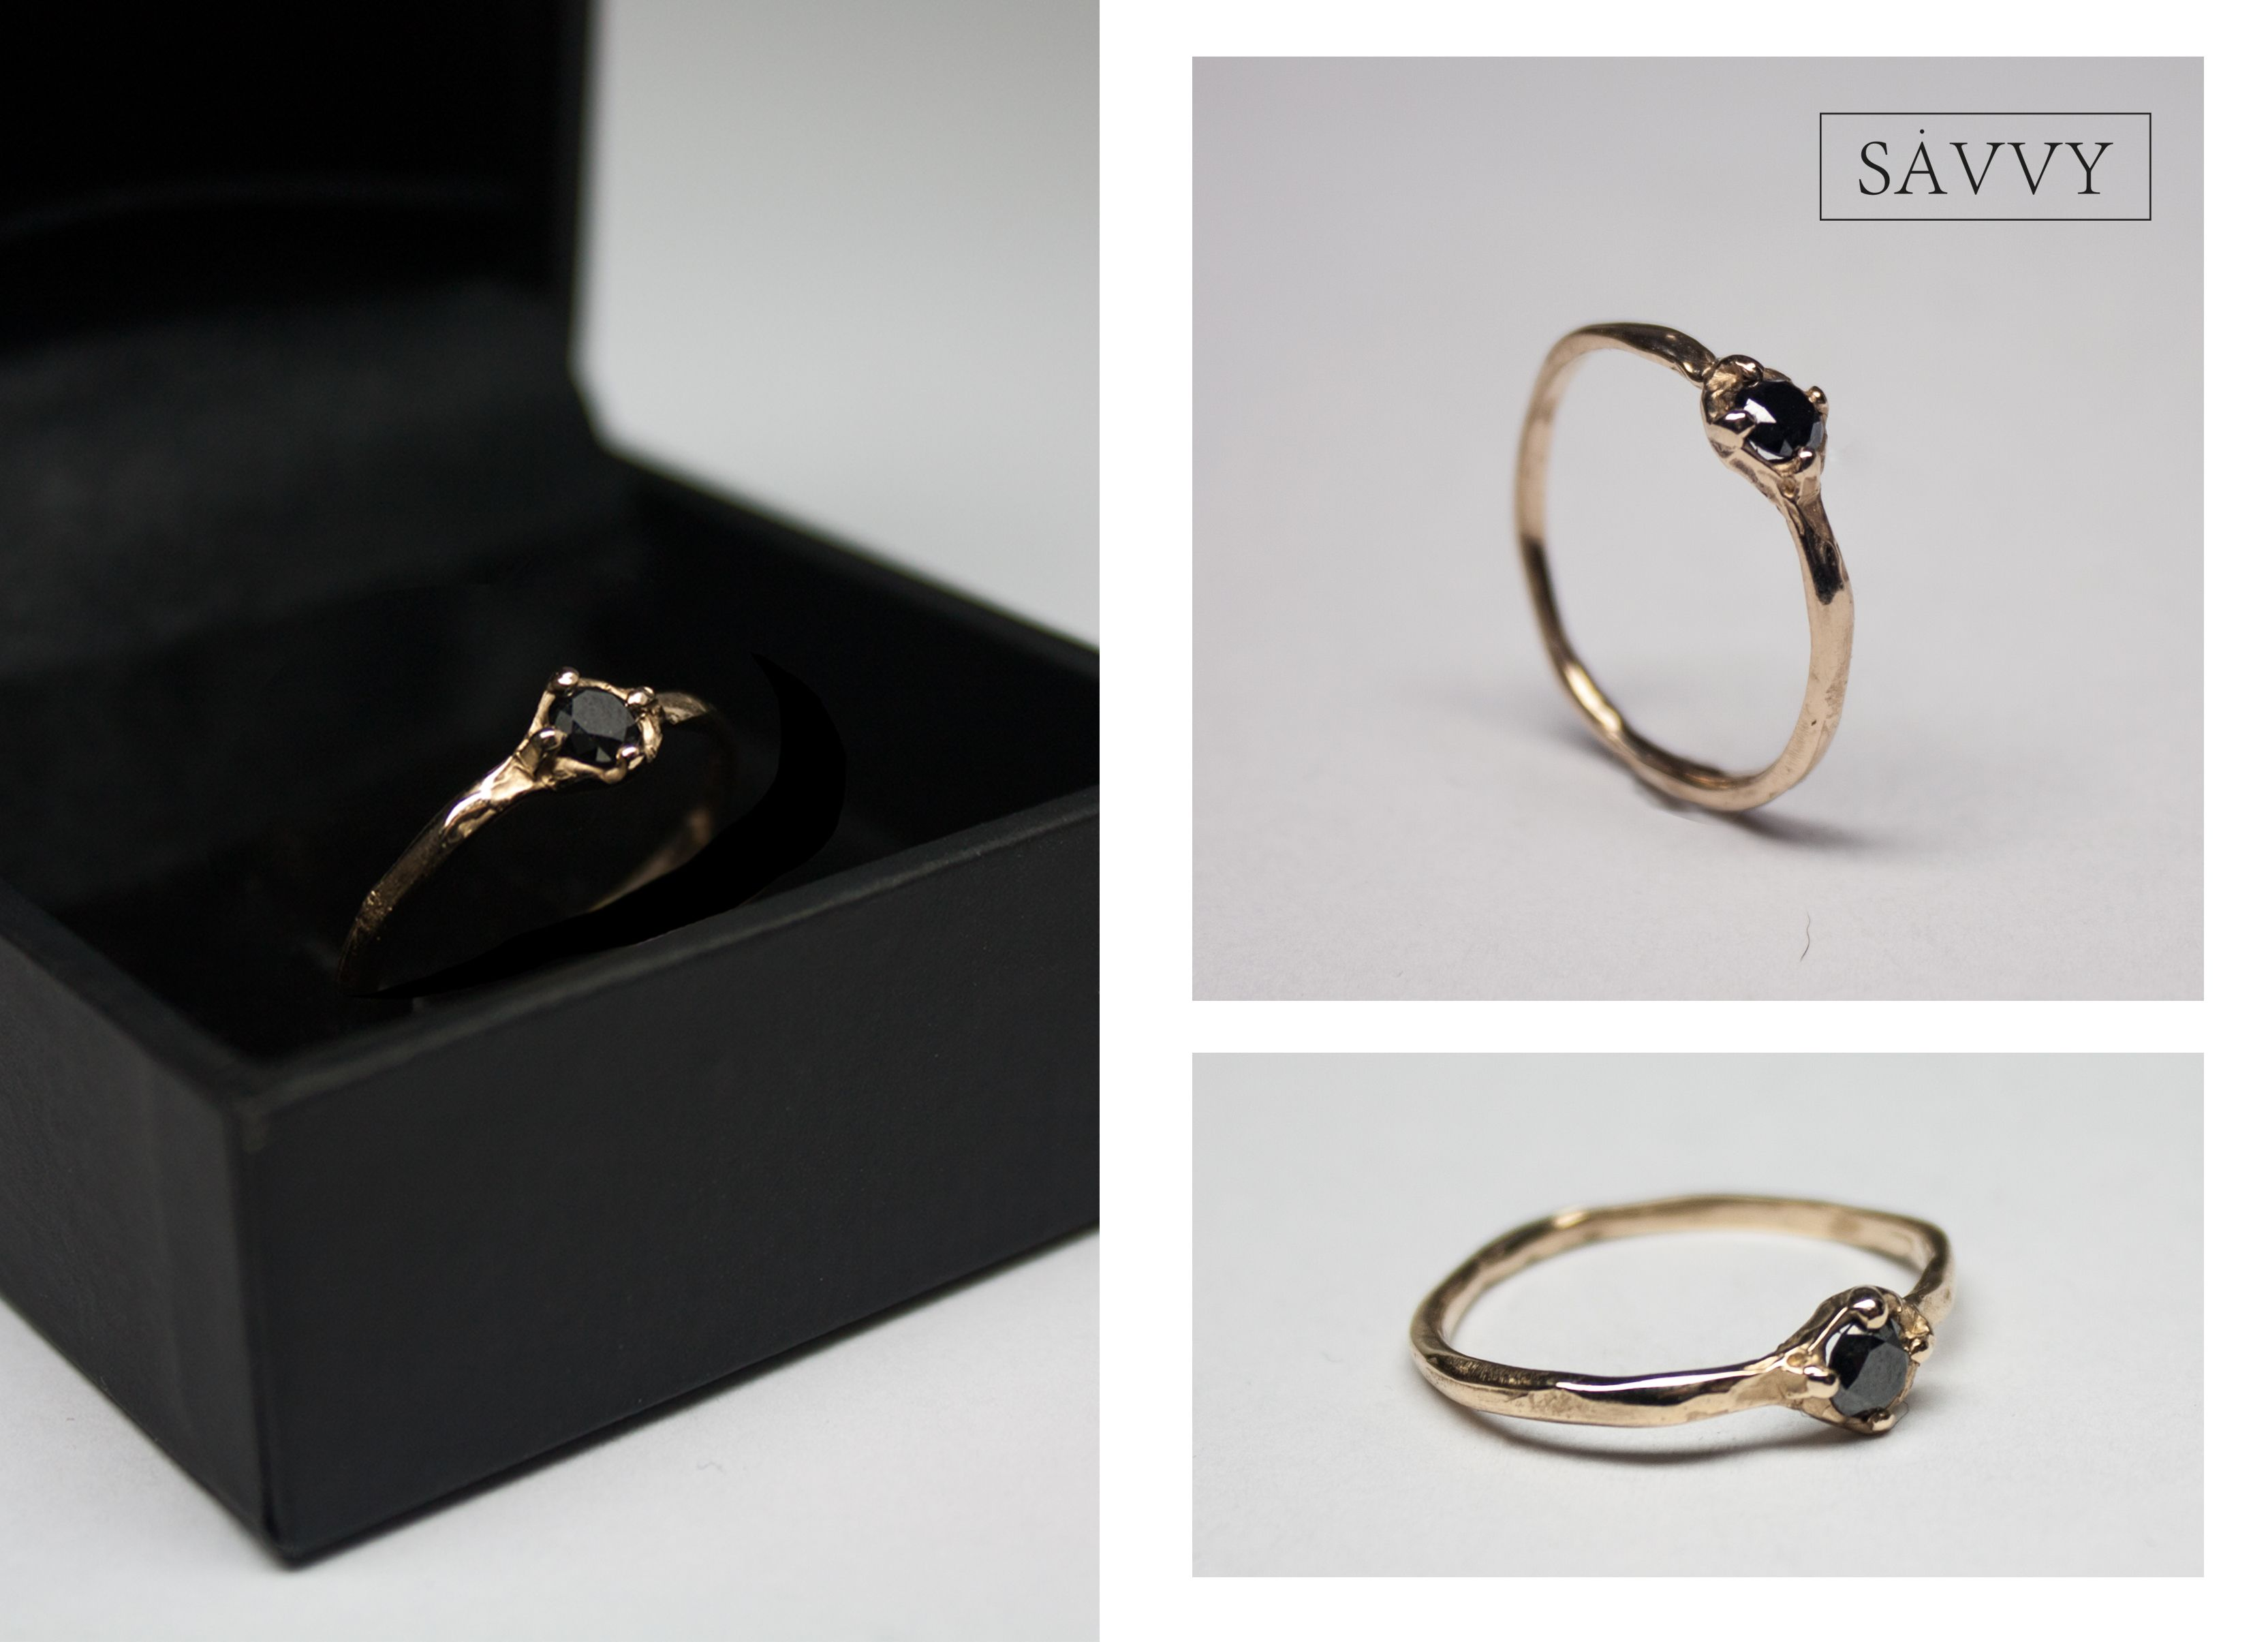 Engagement Ring 14k Gold Black Diamond 35 mm made by SAVVY